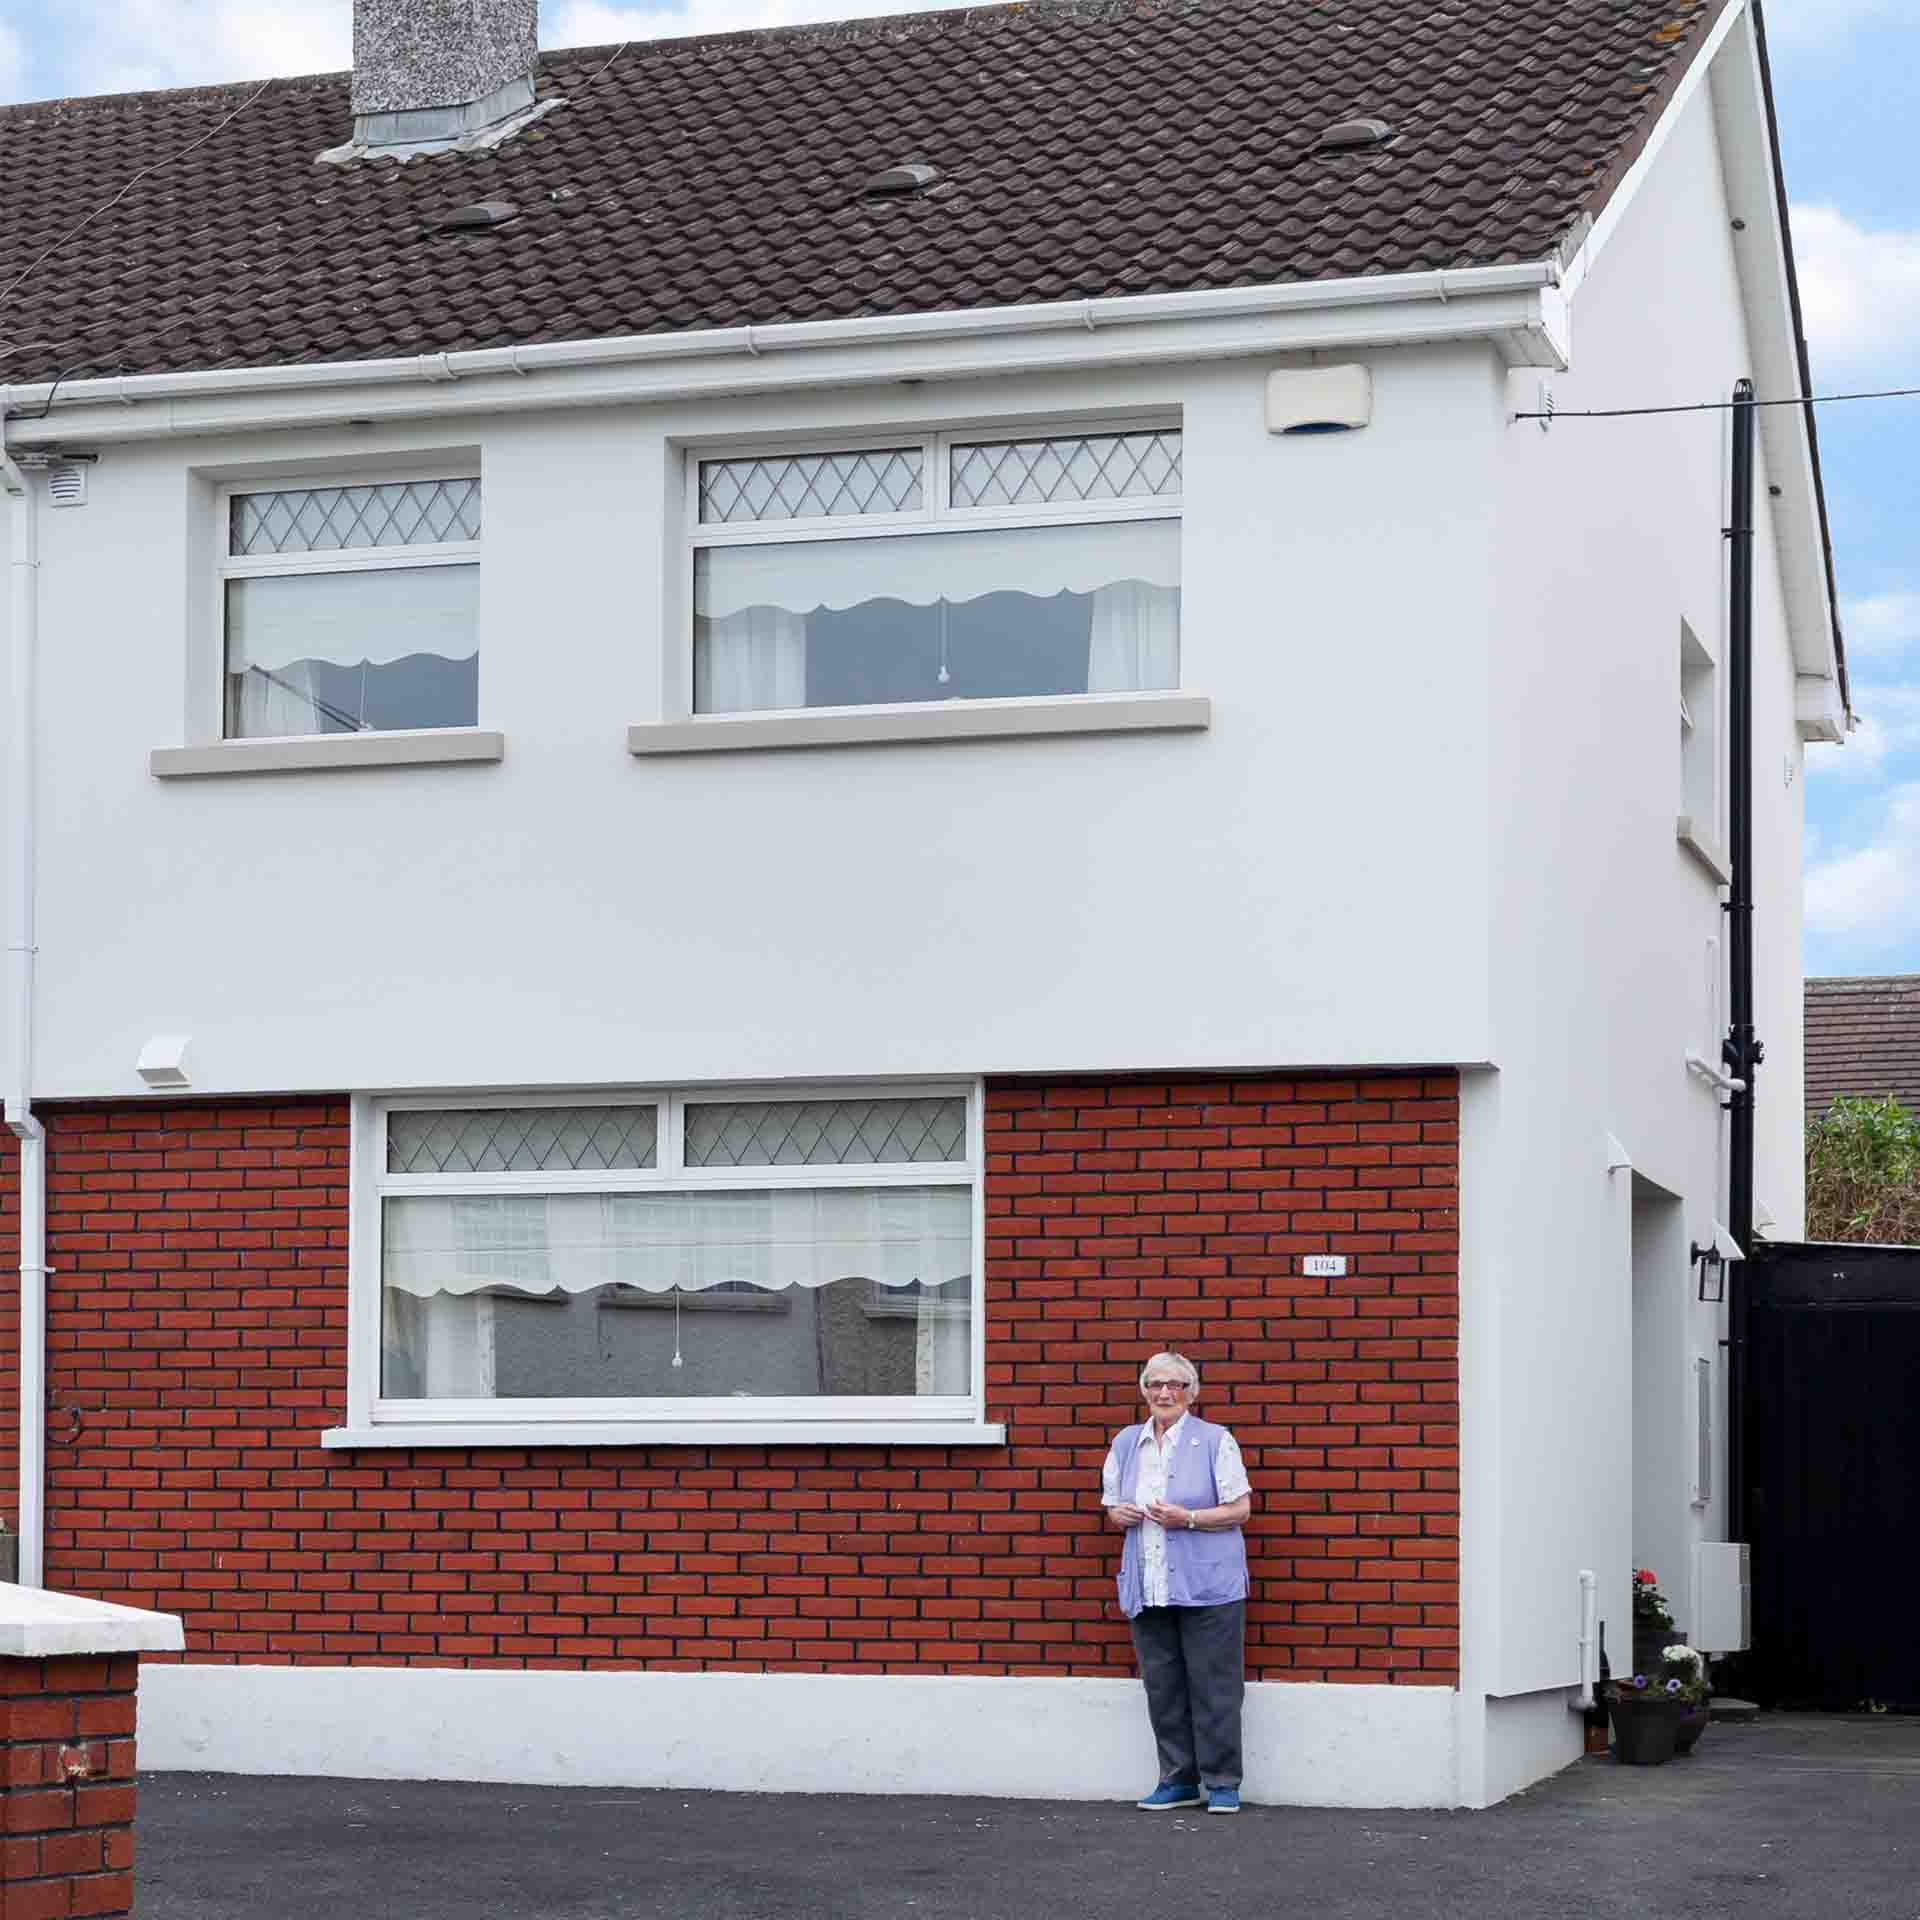 Elderly lady standing outside her home with external wall insulation